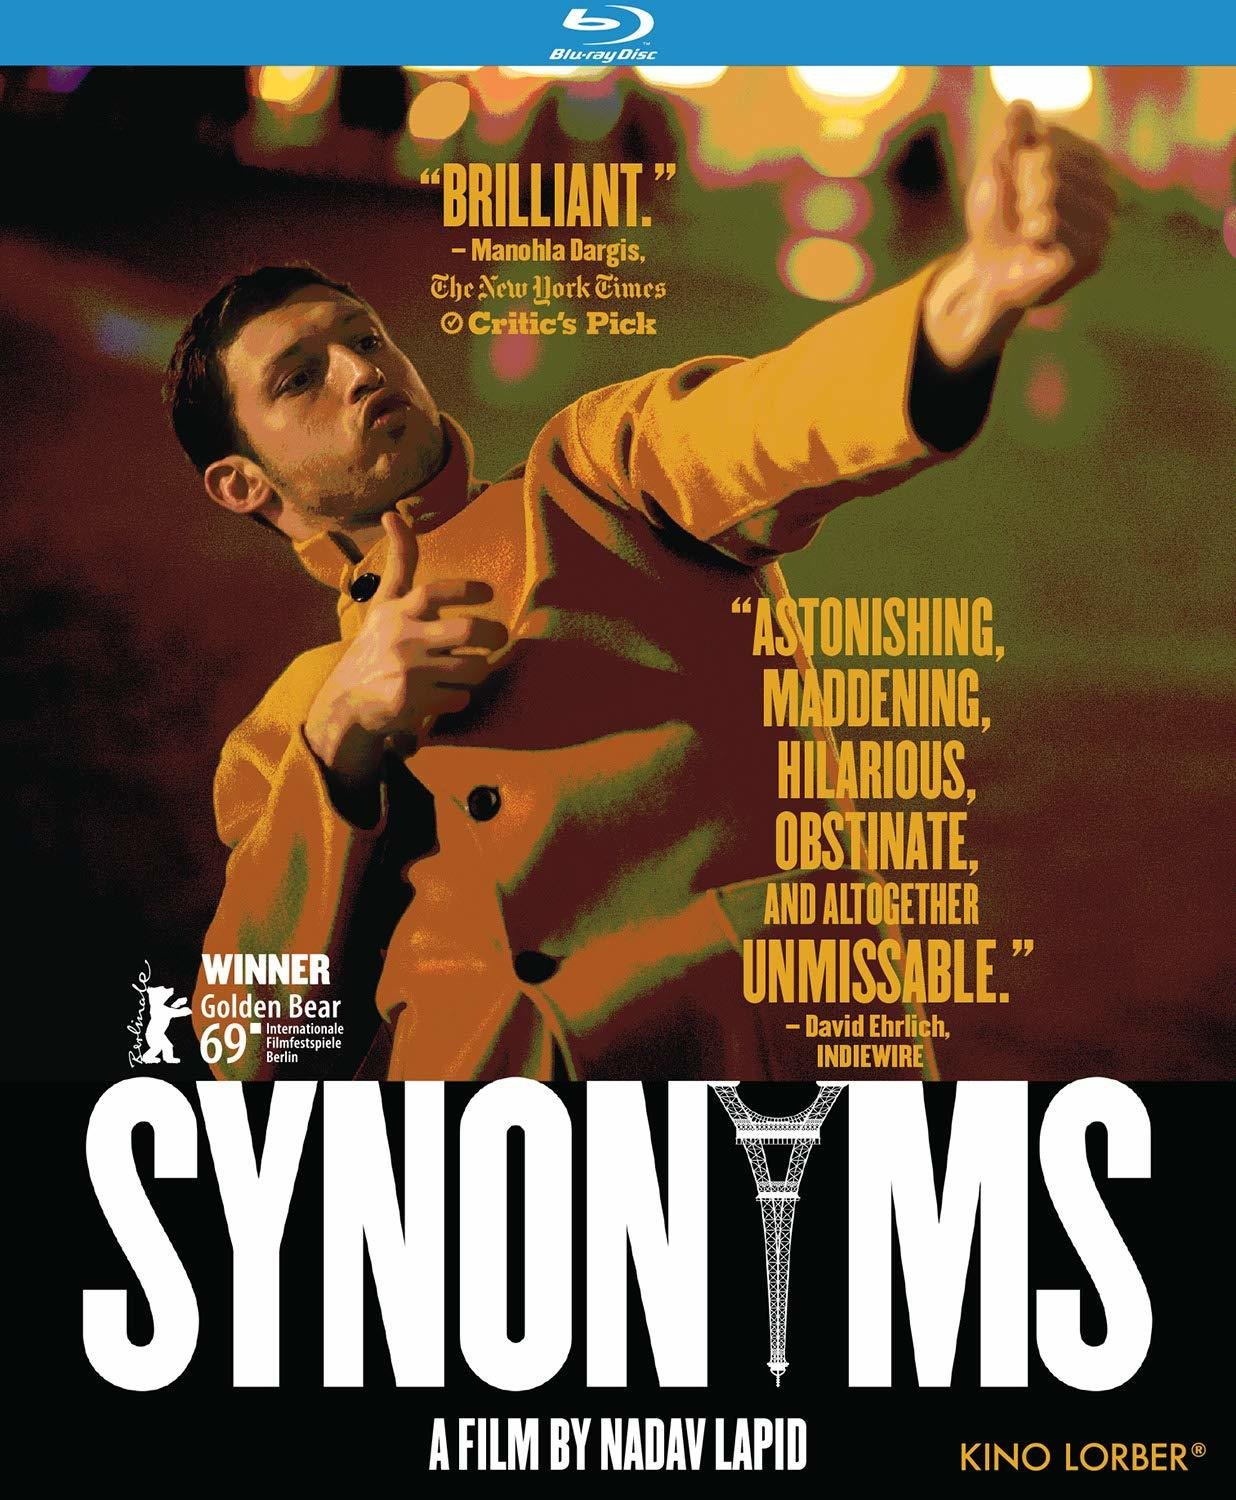 Synonymes aka Synonyms (2019) poster image